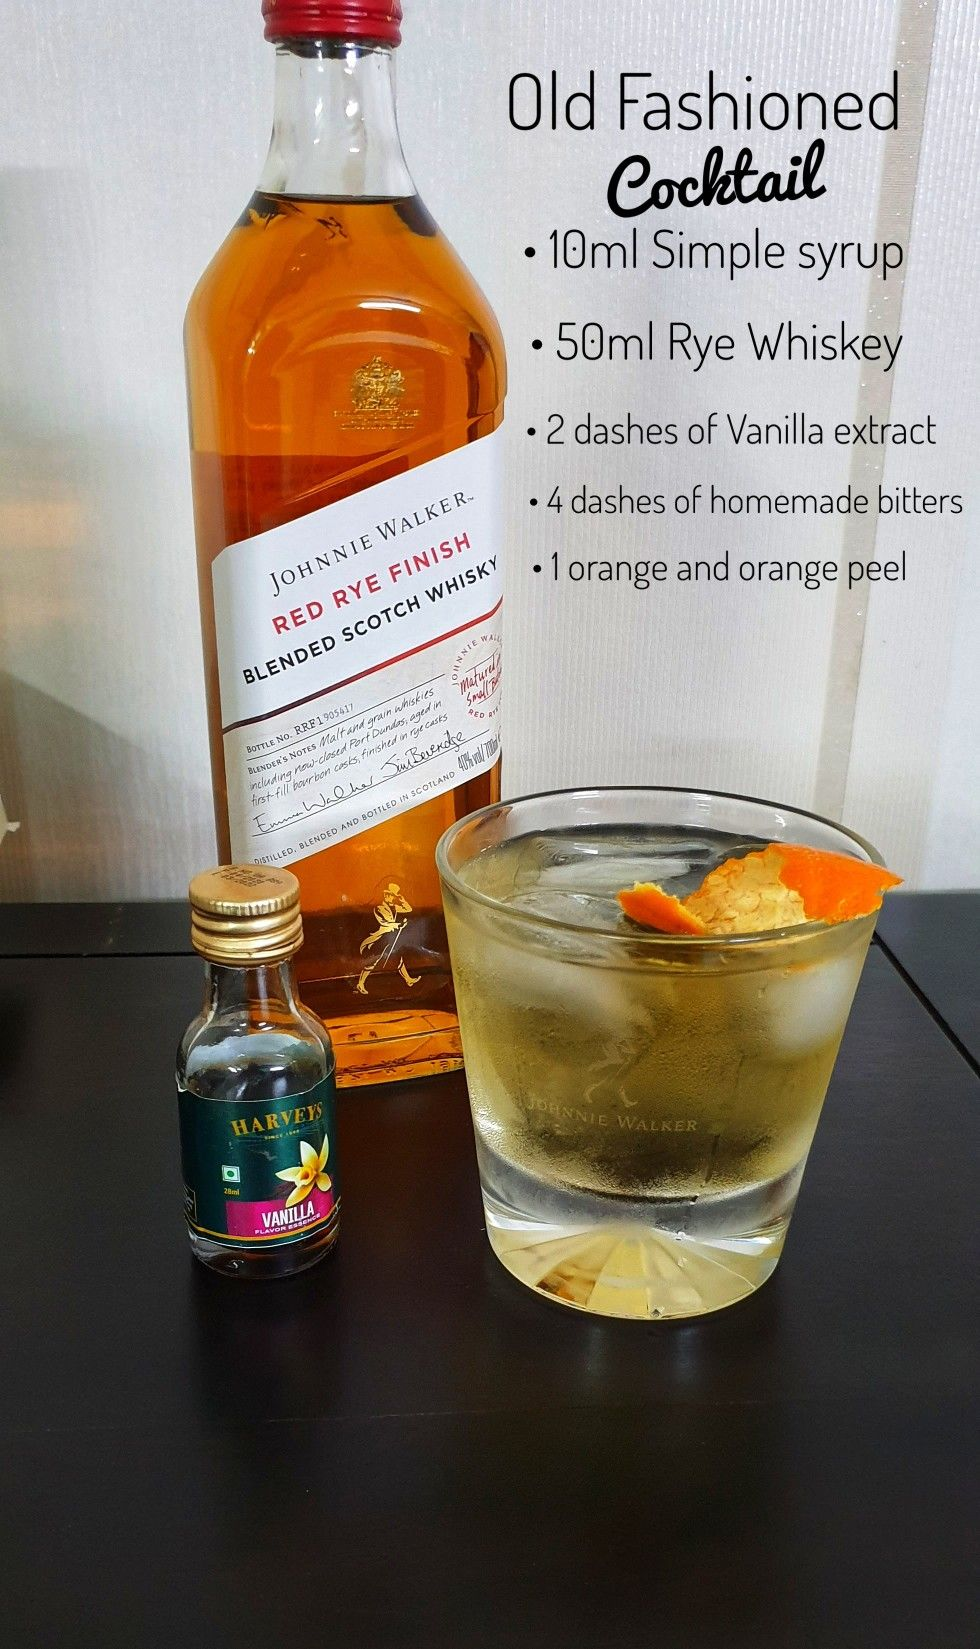 Made this delicious old fashioned cocktail from johnnie walker red rye whiskey. #redryewhiskey #johnniewalker #scotchscentuary